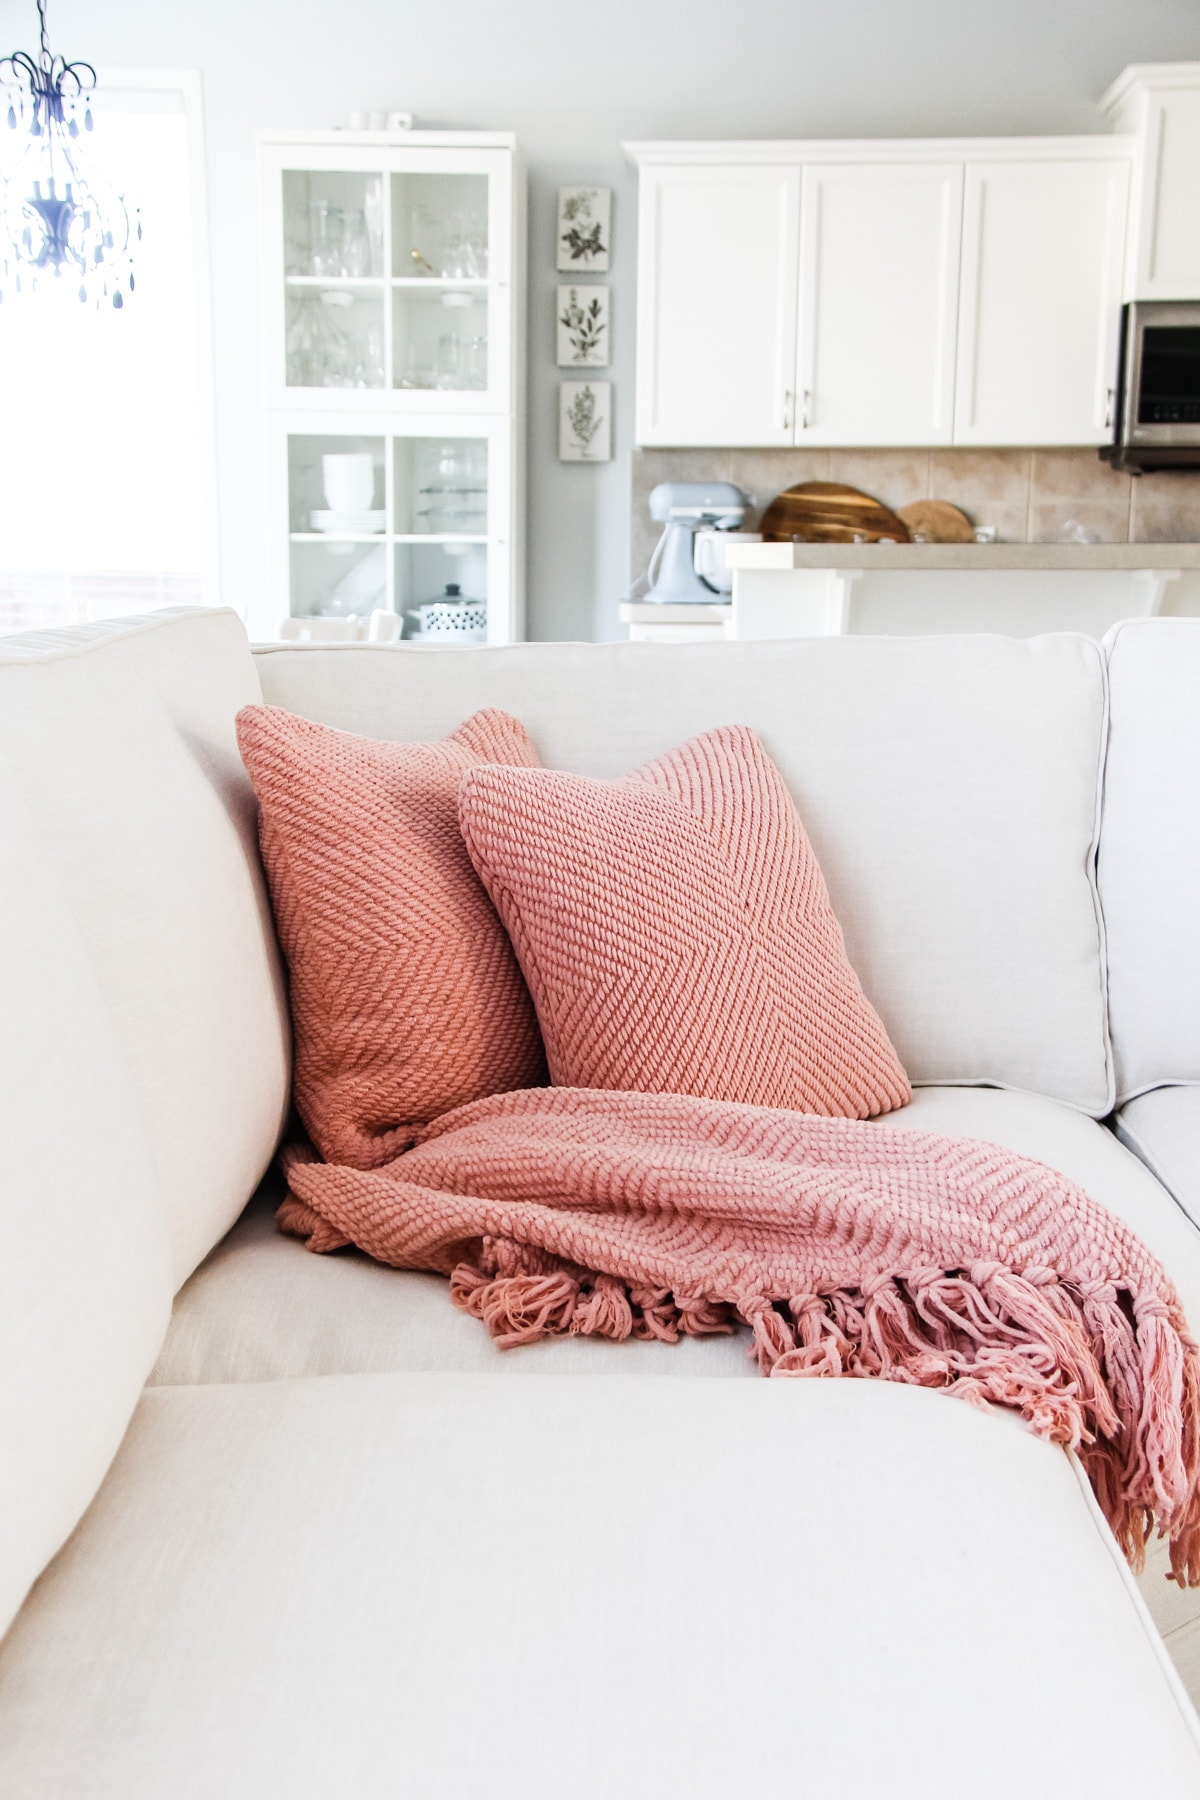 a picture of pink pillows and a pink blanket on a white couch